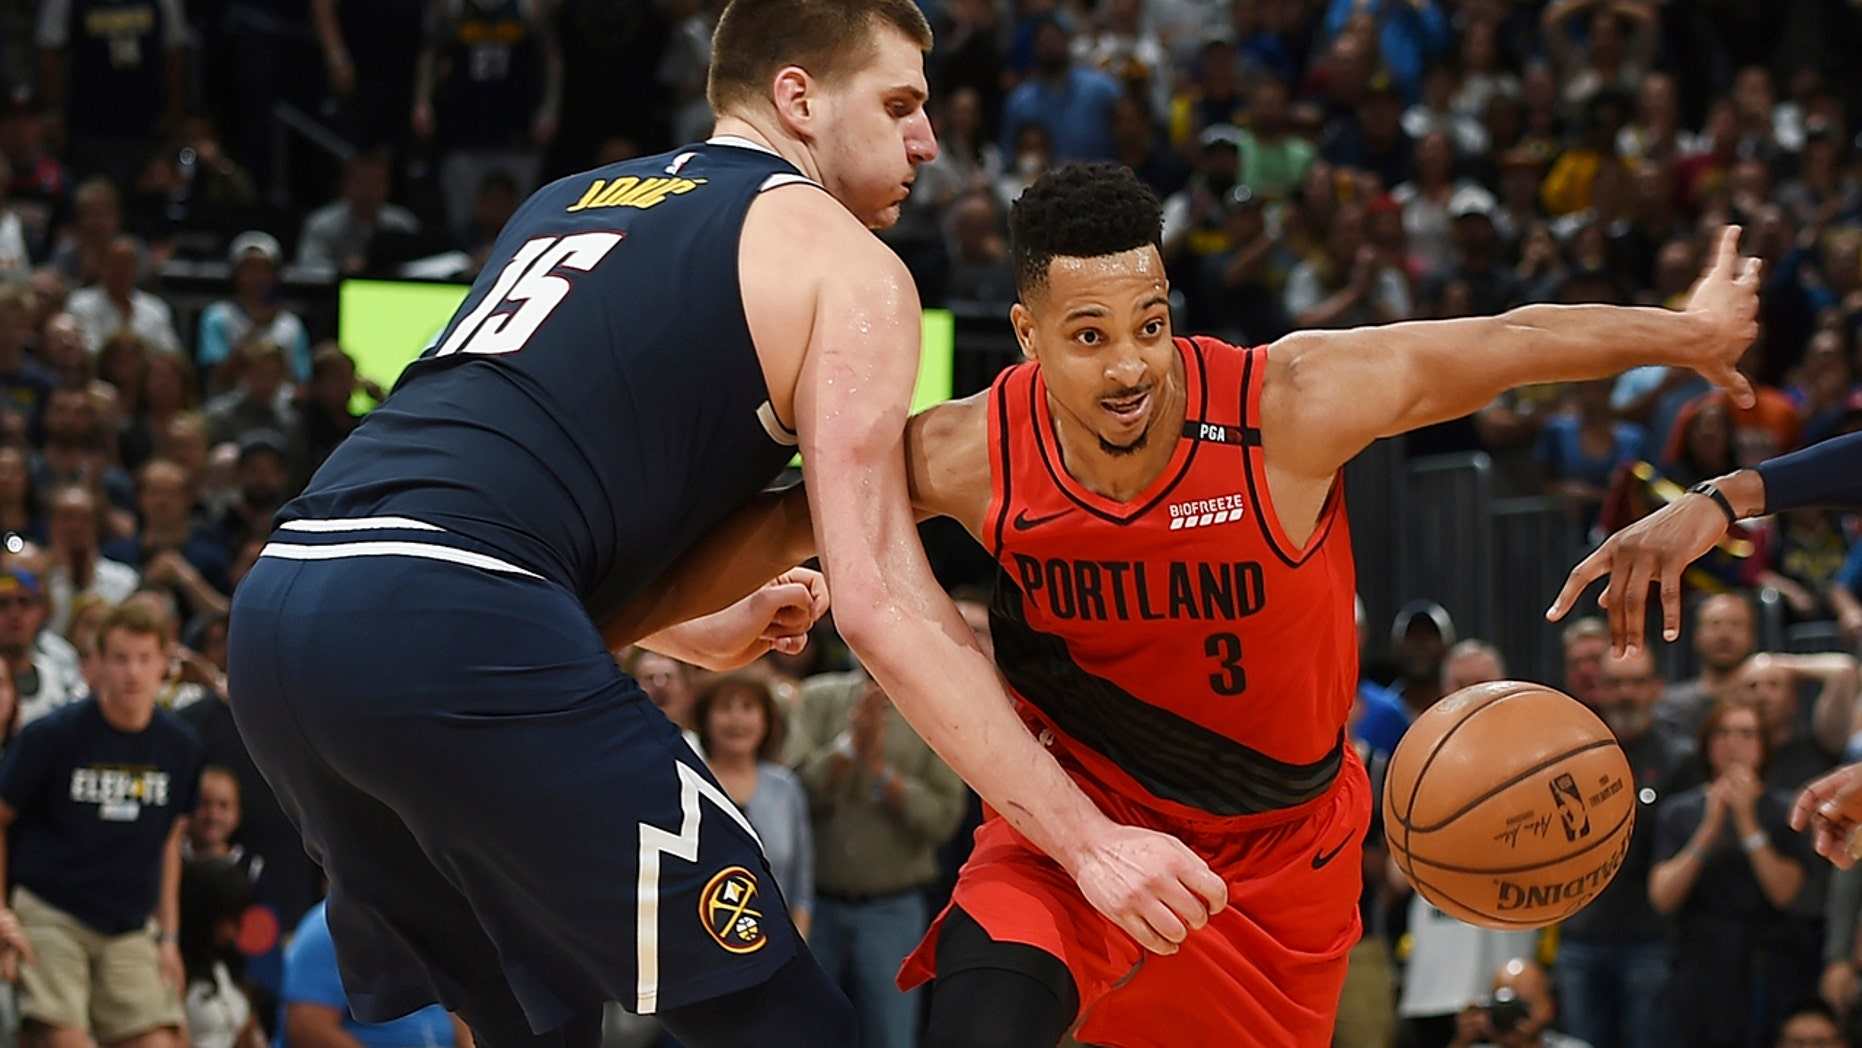 Portland Trail Blazers guard CJ McCollum, right, pursues the ball with Denver Nuggets center Nikola Jokic in the second half of Game 7 of an NBA basketball second-round playoff series Sunday, May 12, 2019, in Denver. (AP Photo/David Zalubowski)